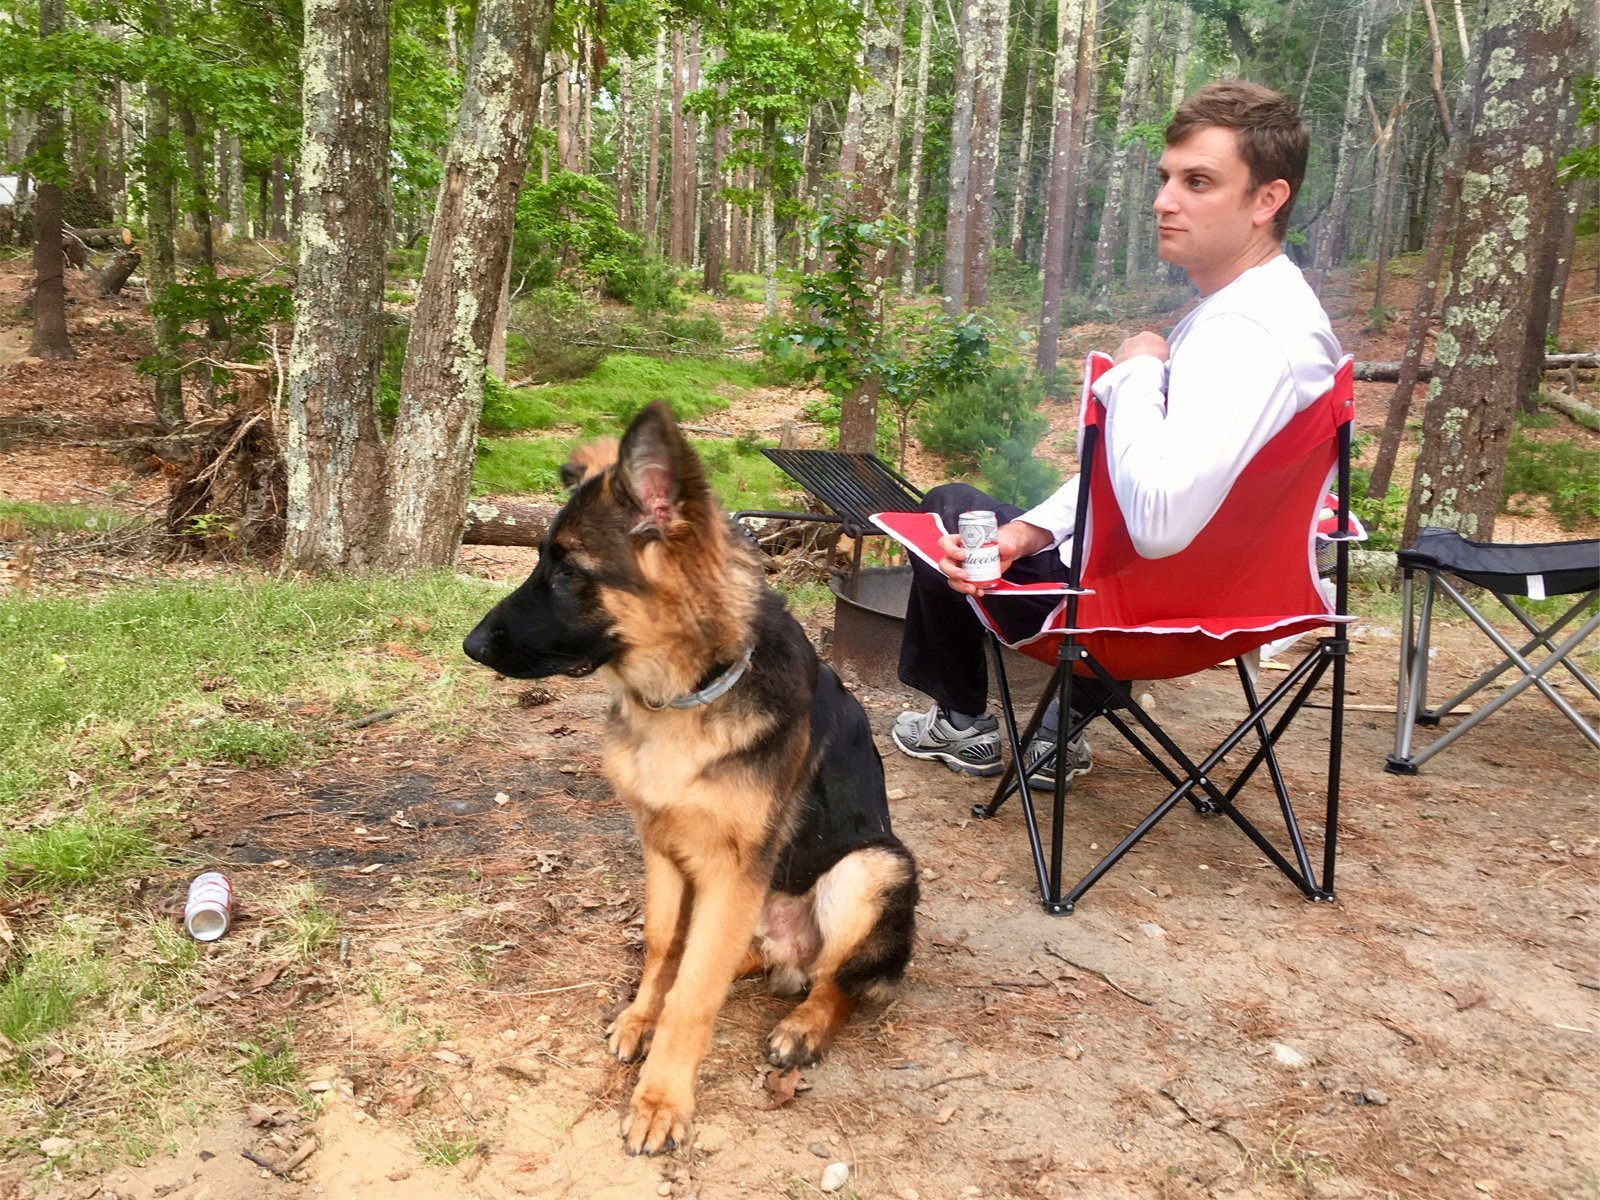 Camping with a dog at Nickerson State Park in Cape Cod, Massachusetts